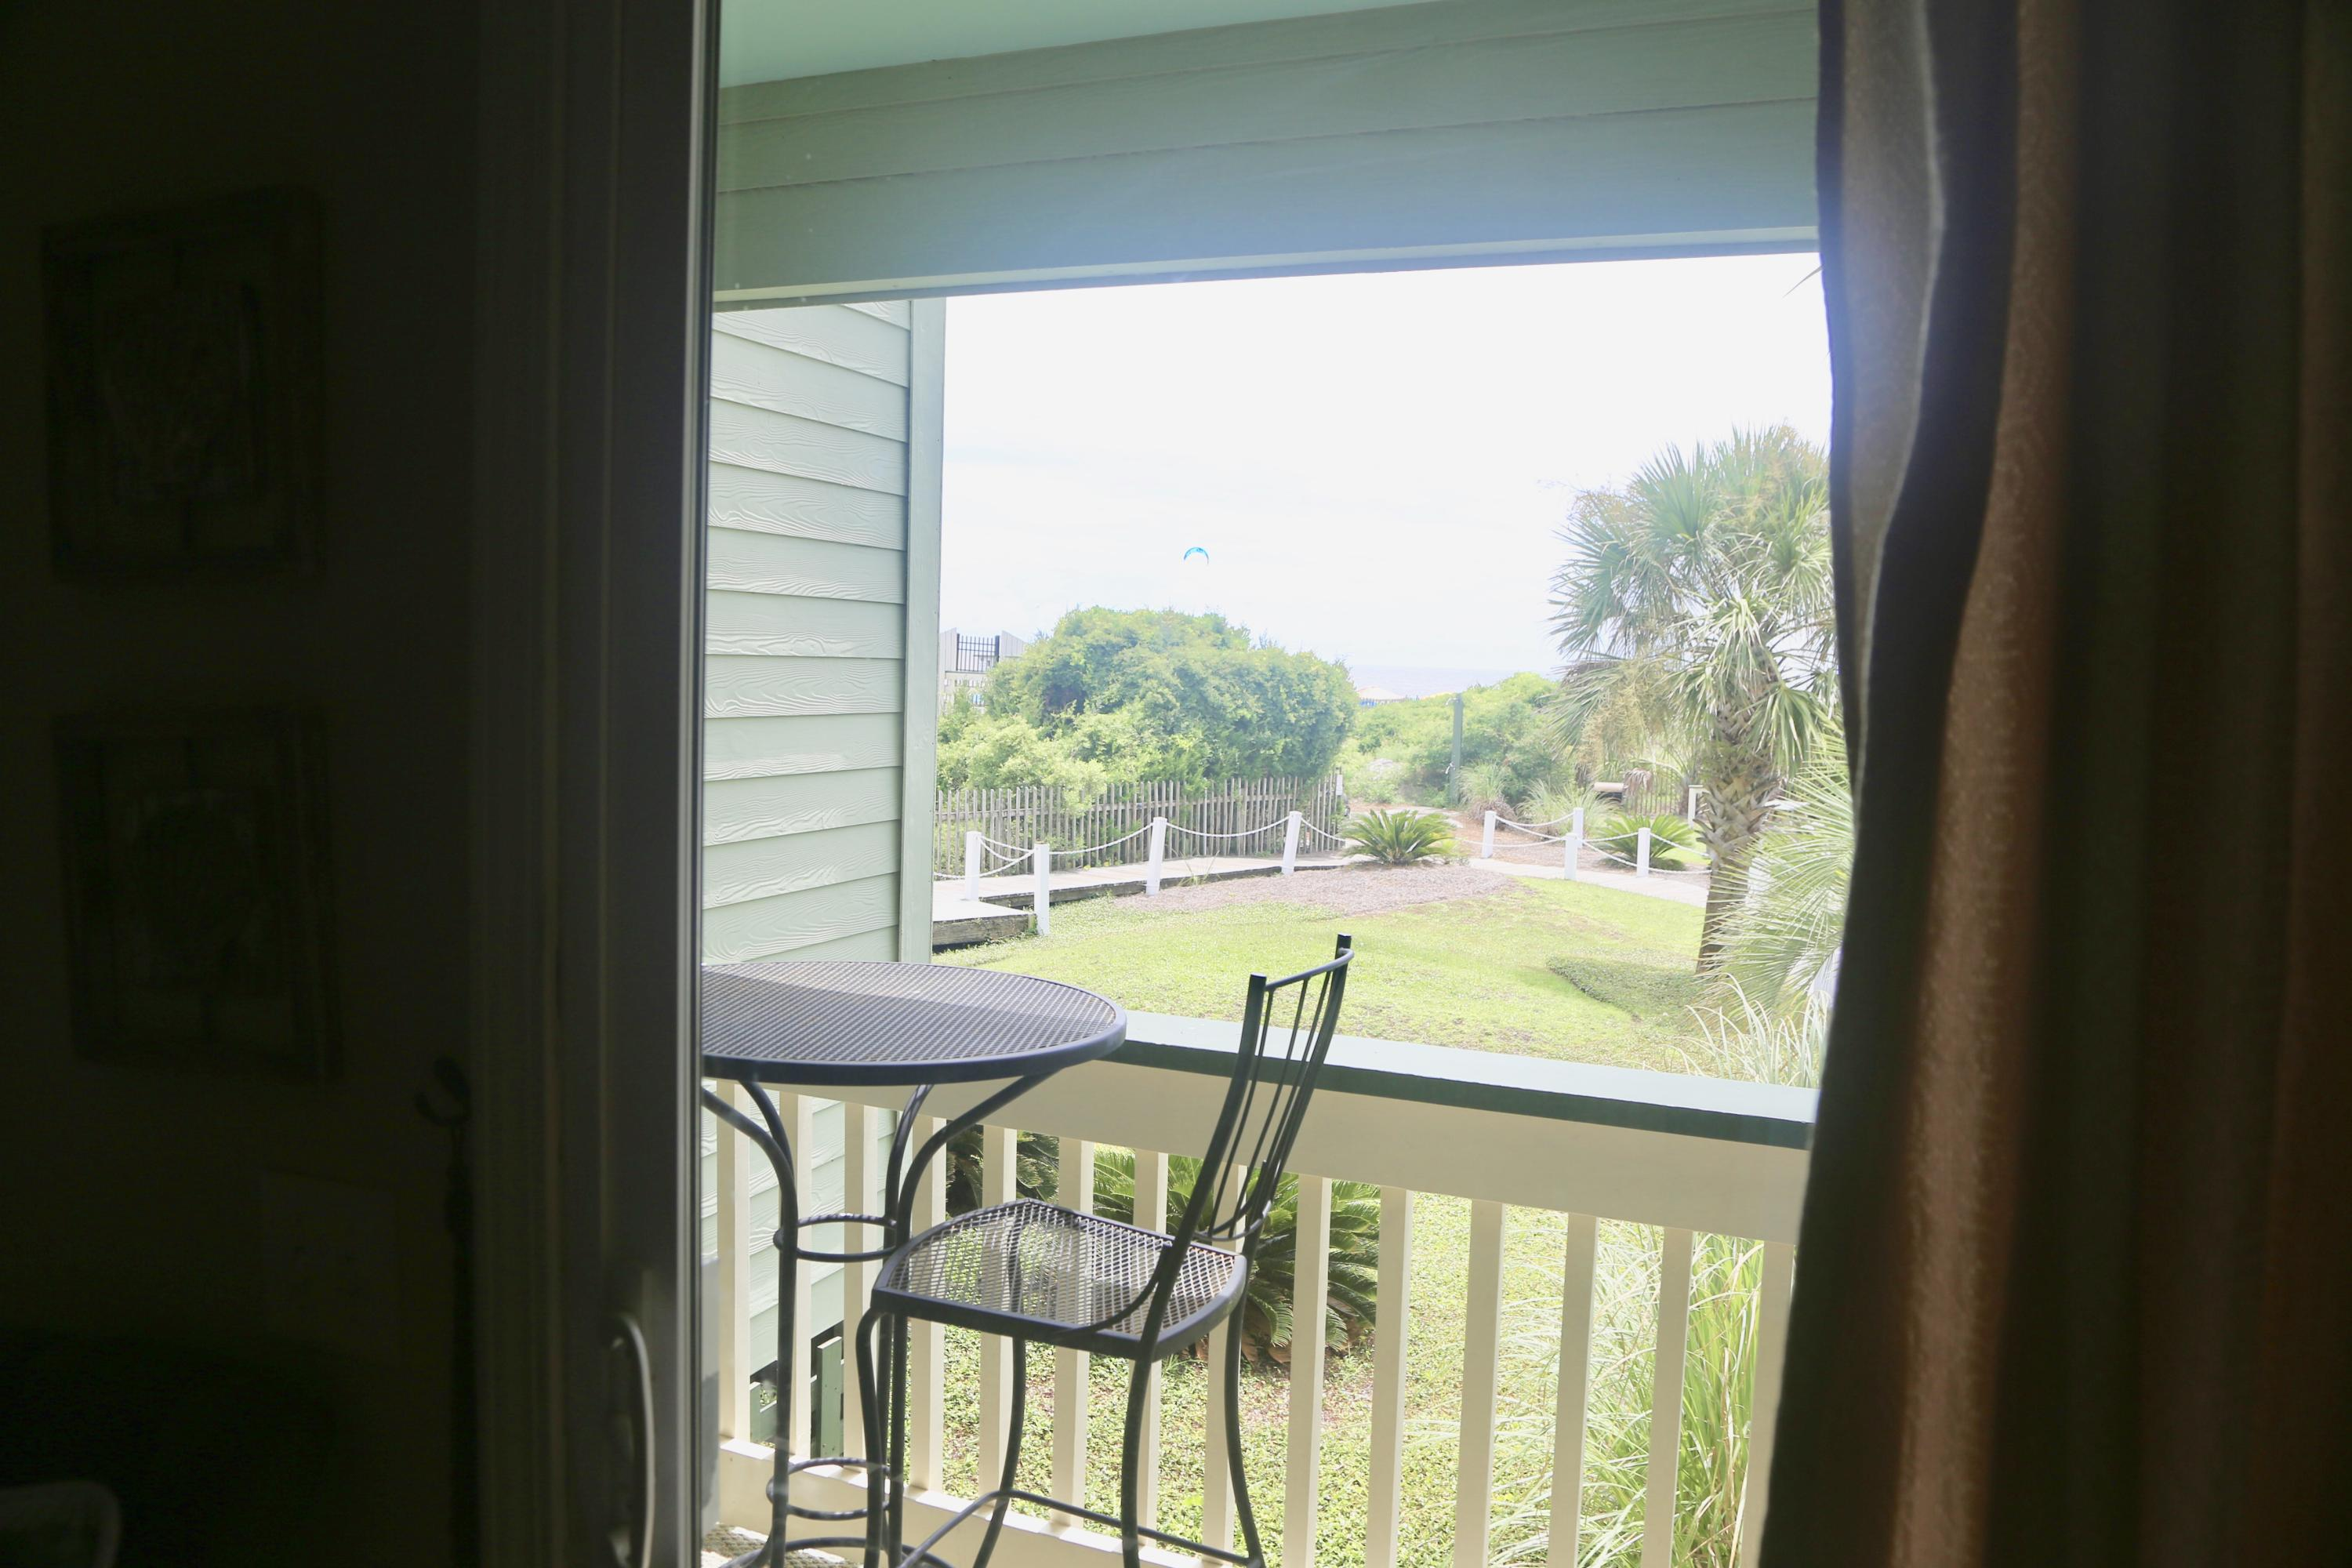 Sea Cabin On The Ocean Homes For Sale - 1300 Ocean, Isle of Palms, SC - 29